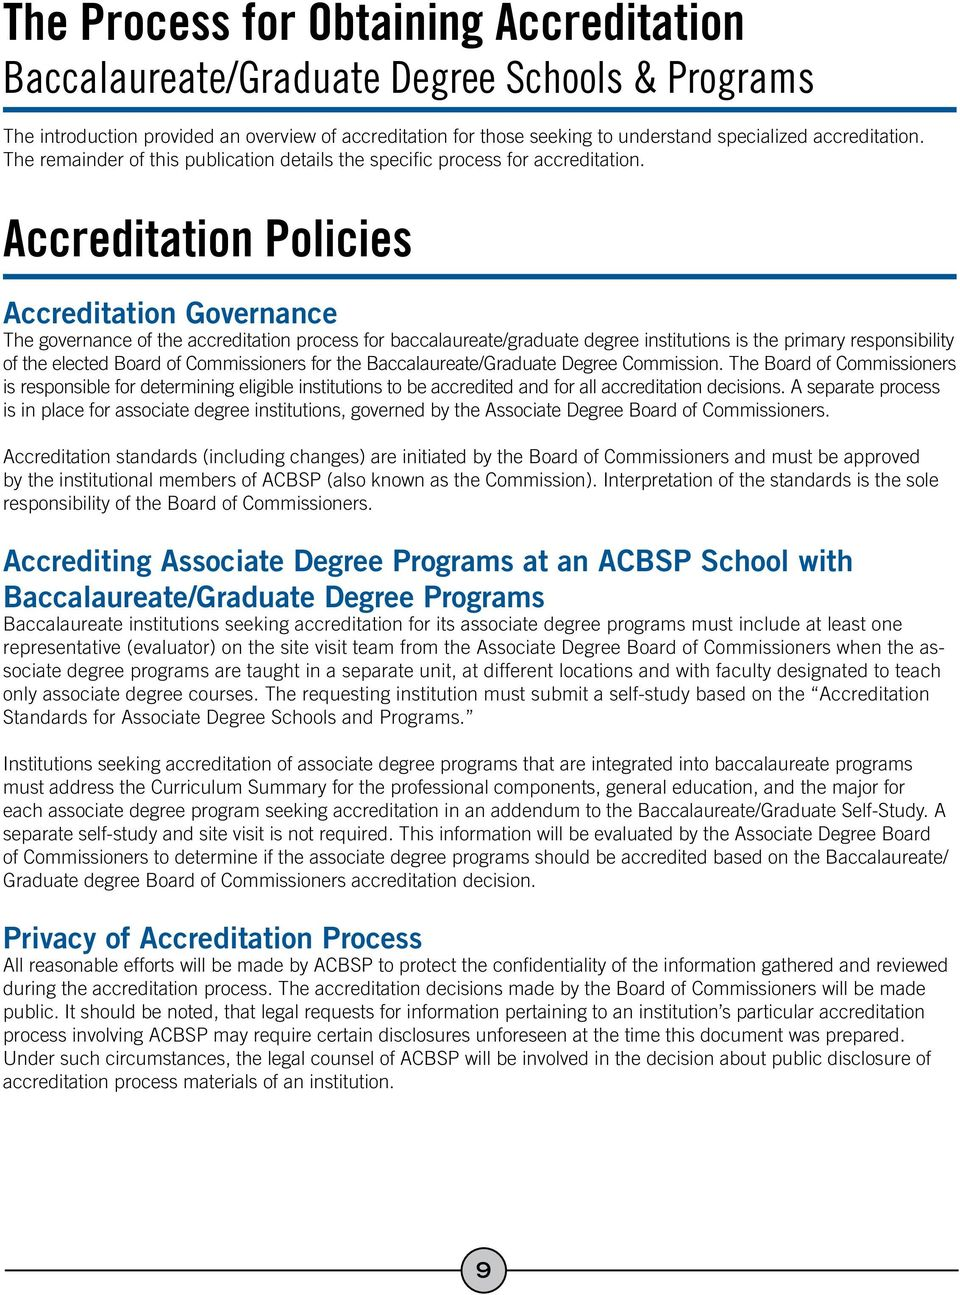 Accreditation Policies Accreditation Governance The governance of the accreditation process for baccalaureate/graduate degree institutions is the primary responsibility of the elected Board of